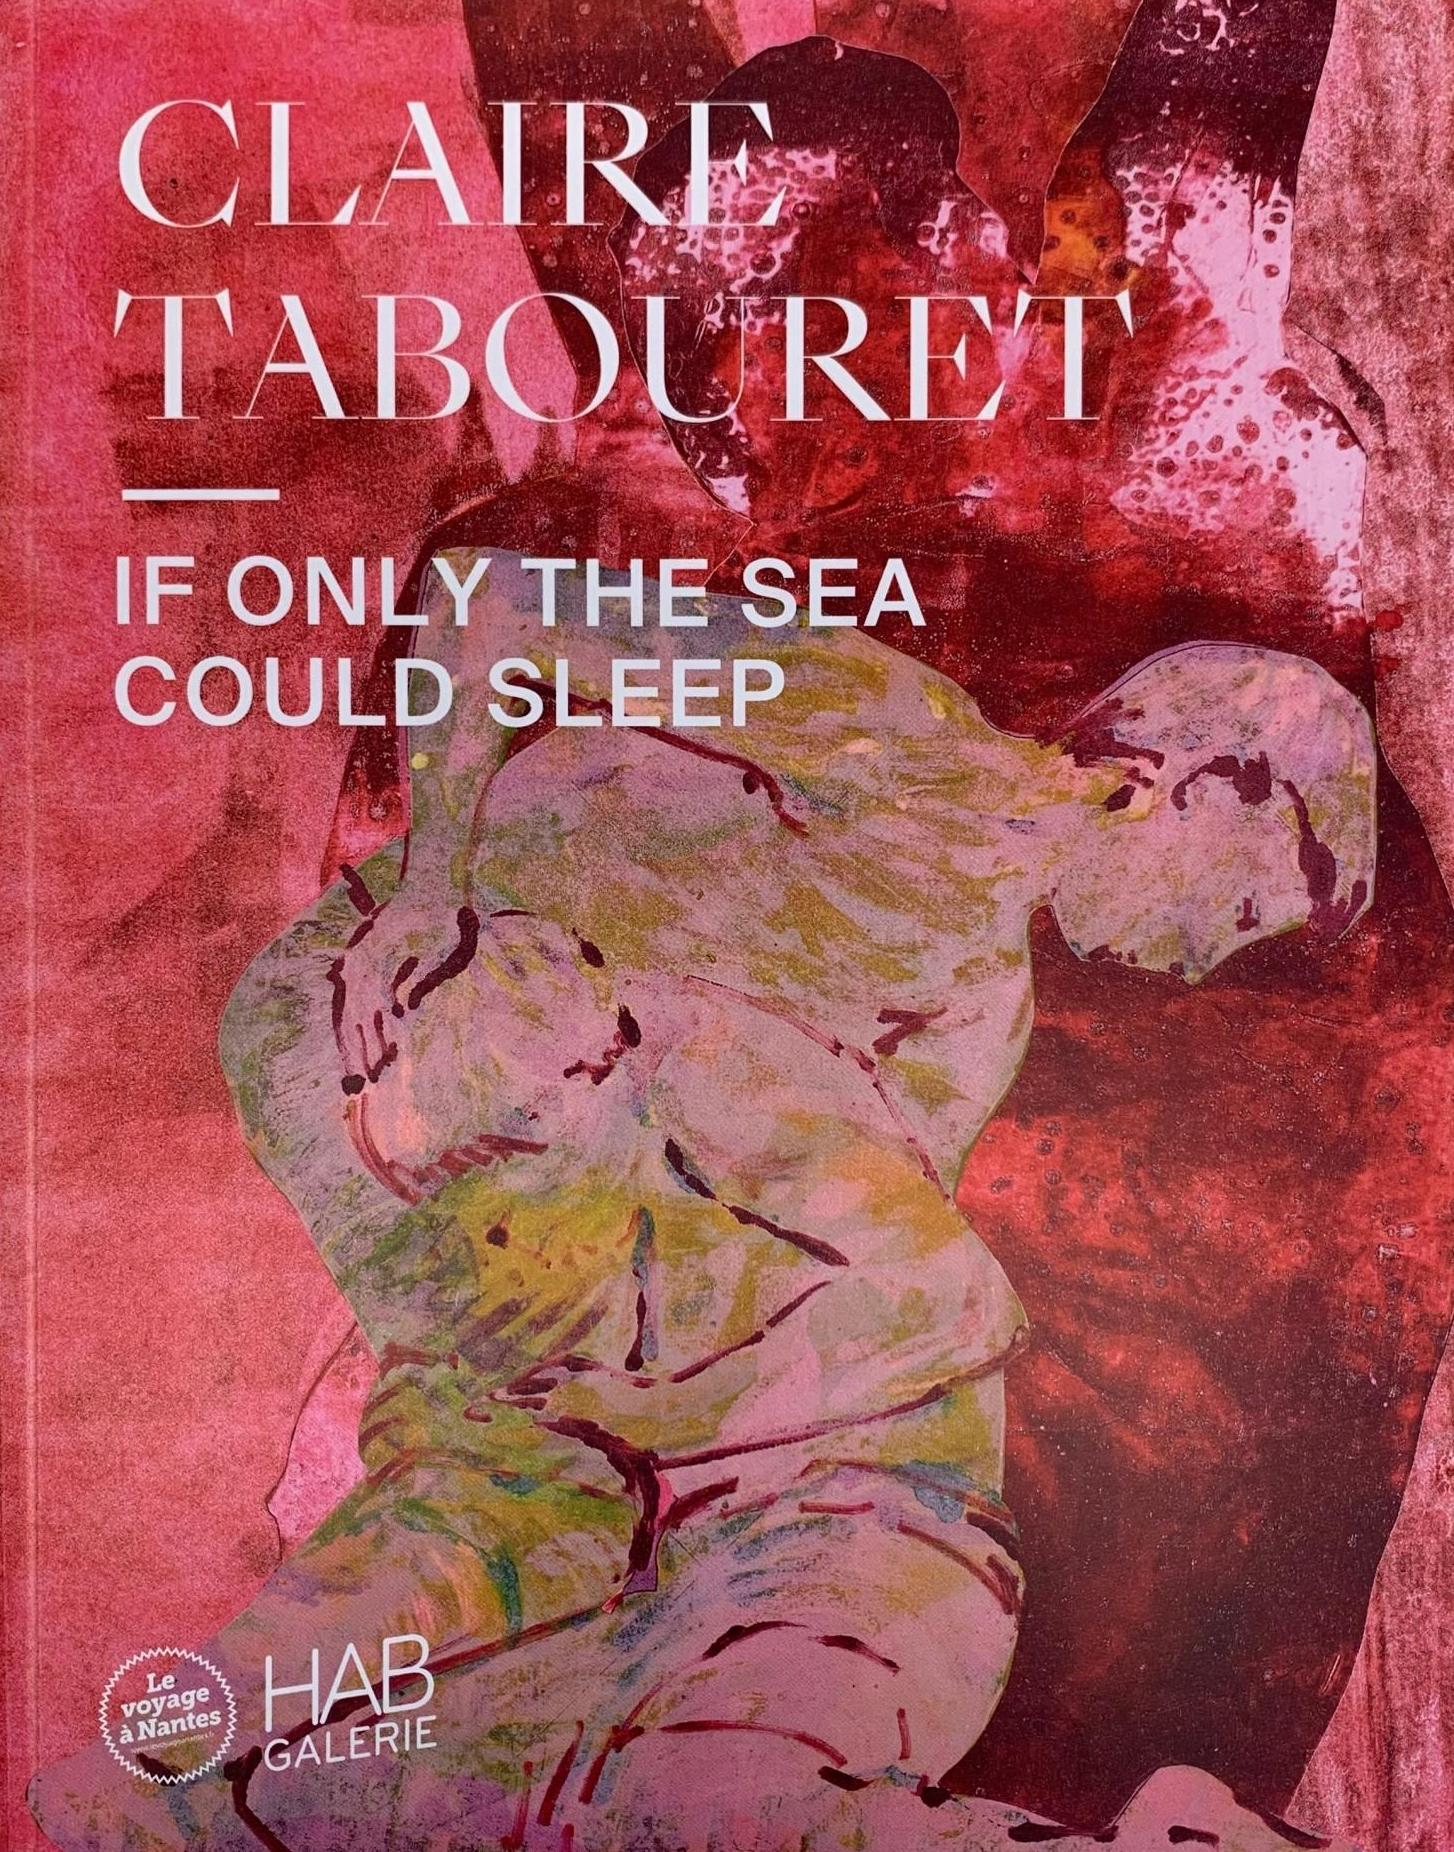 CLAIRE TABOURET - IF ONLY THE SEA COULD SLEEP